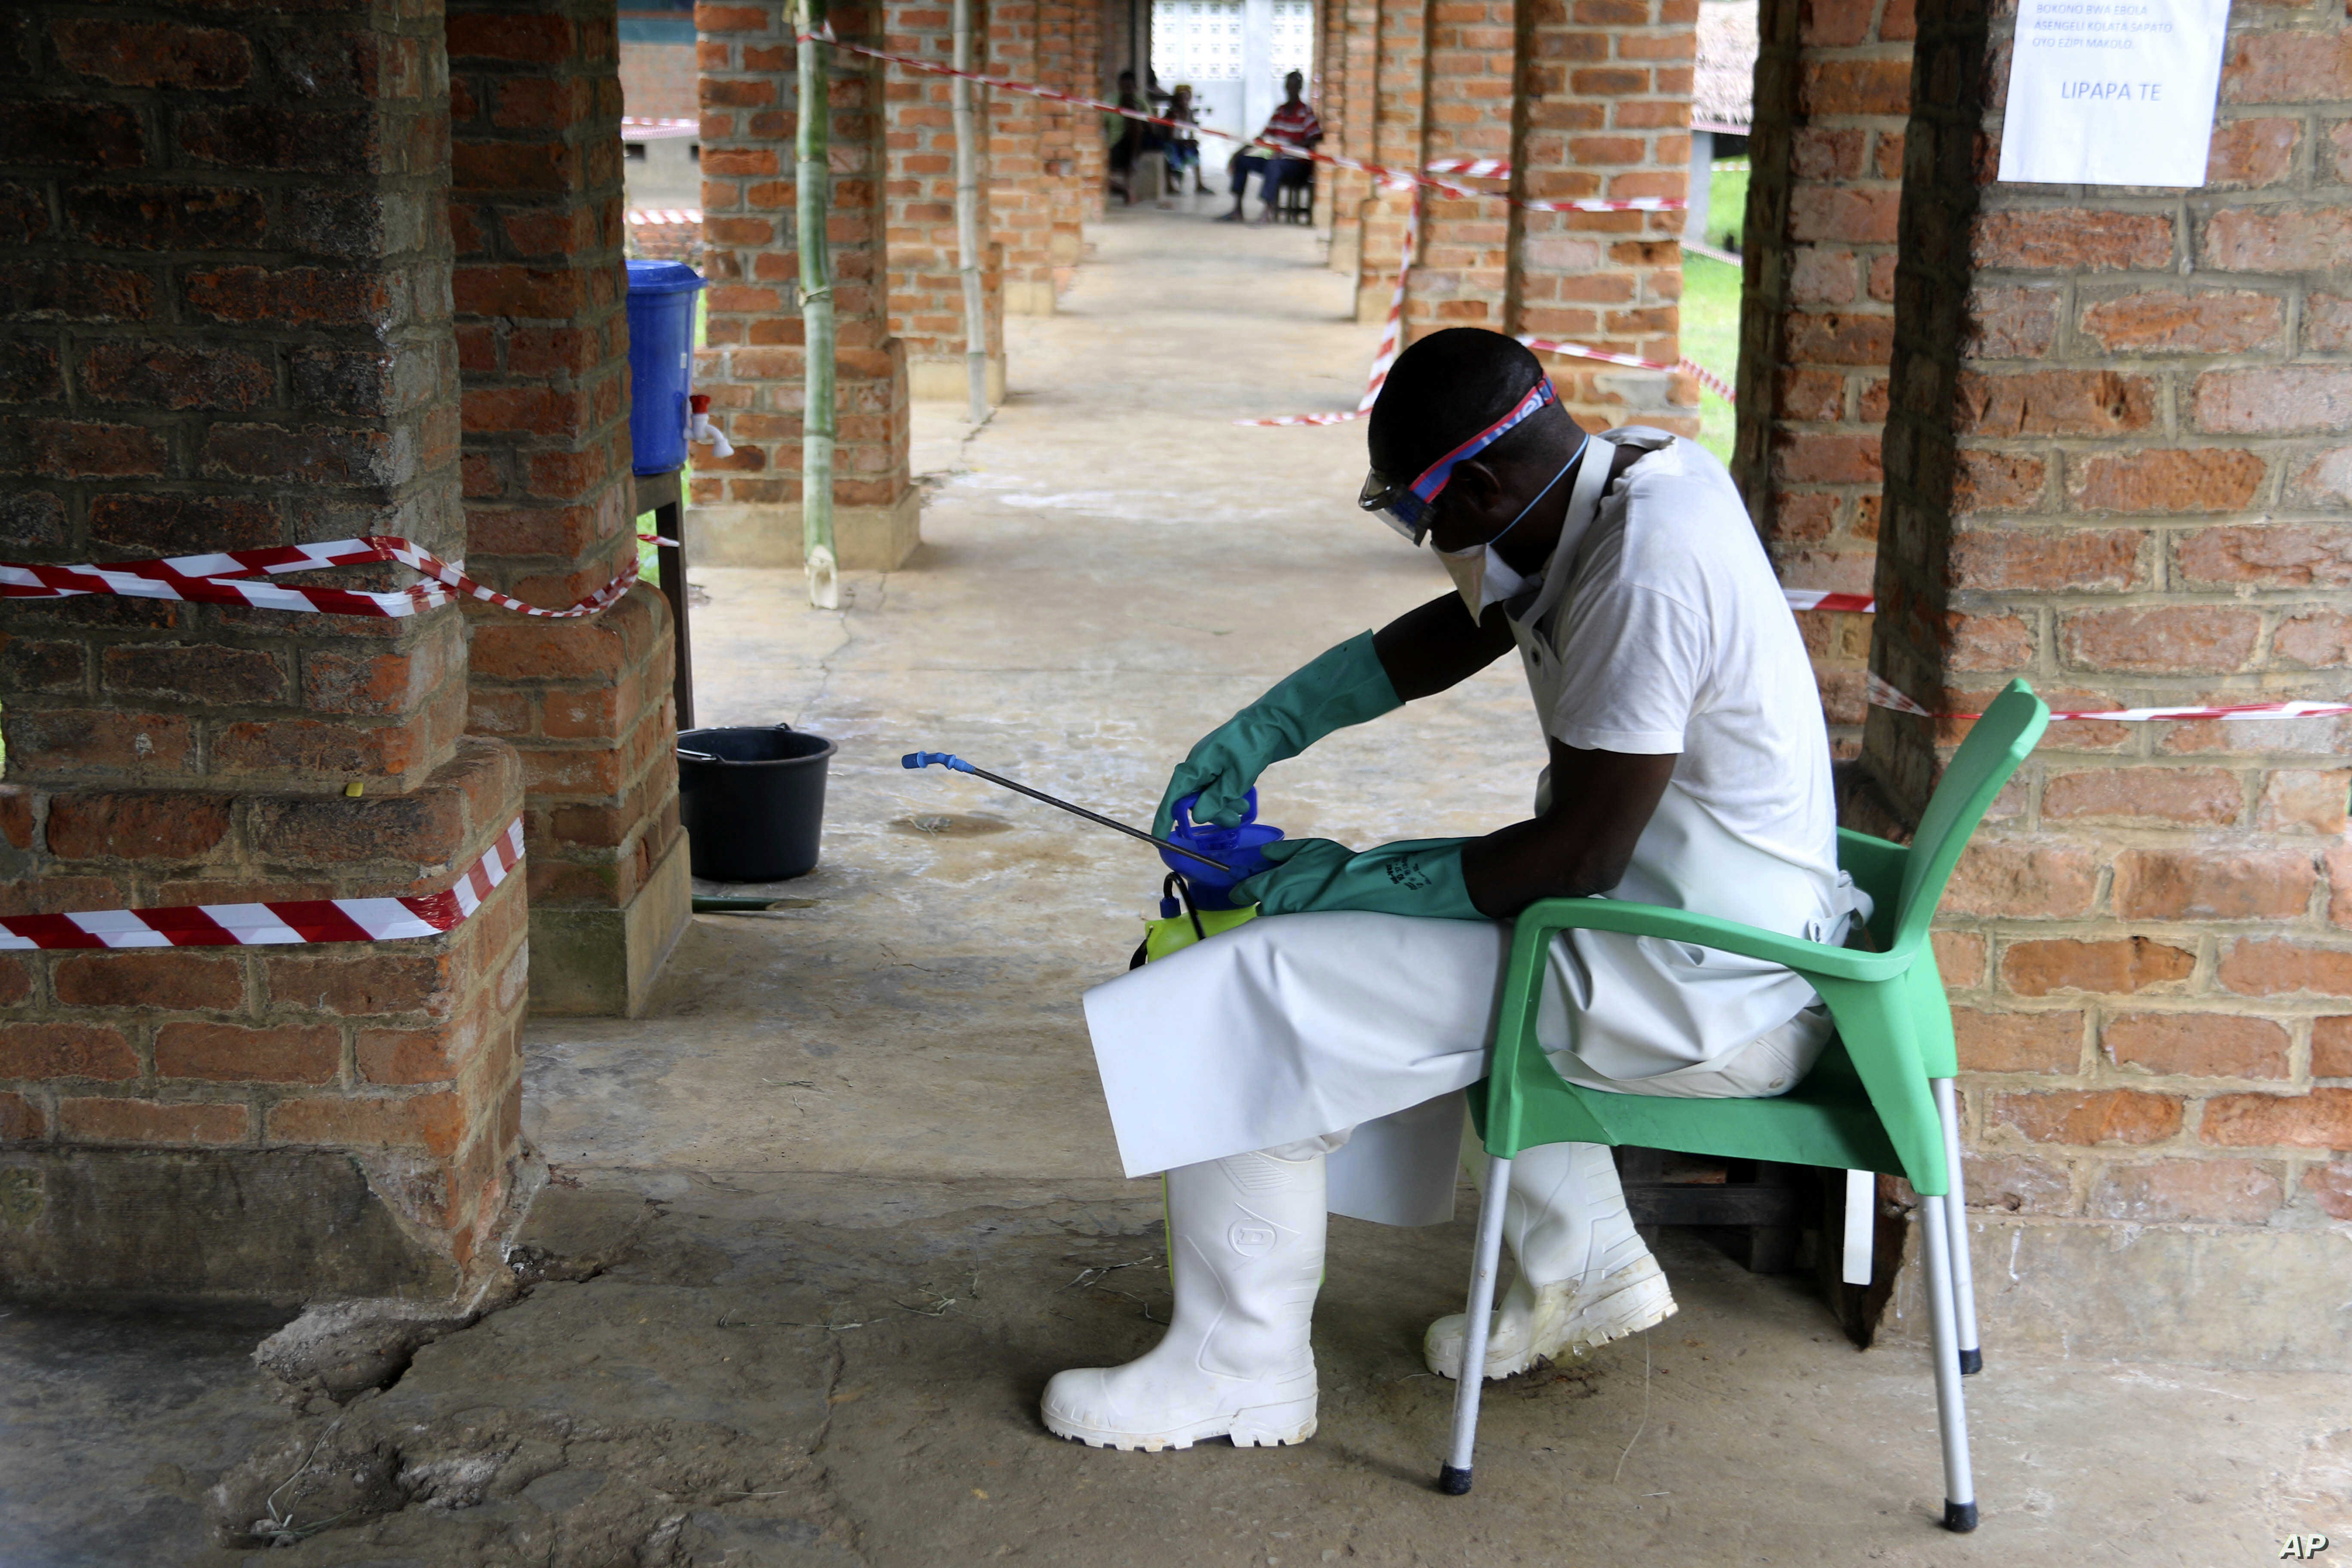 A health care worker wears virus protective gear at a treatment center in Bikoro, Democratic Republic of Congo, May 13, 2018. Congo's latest Ebola outbreak has spread to a city of more than 1 million people, a worrying shift as the deadly virus risks...